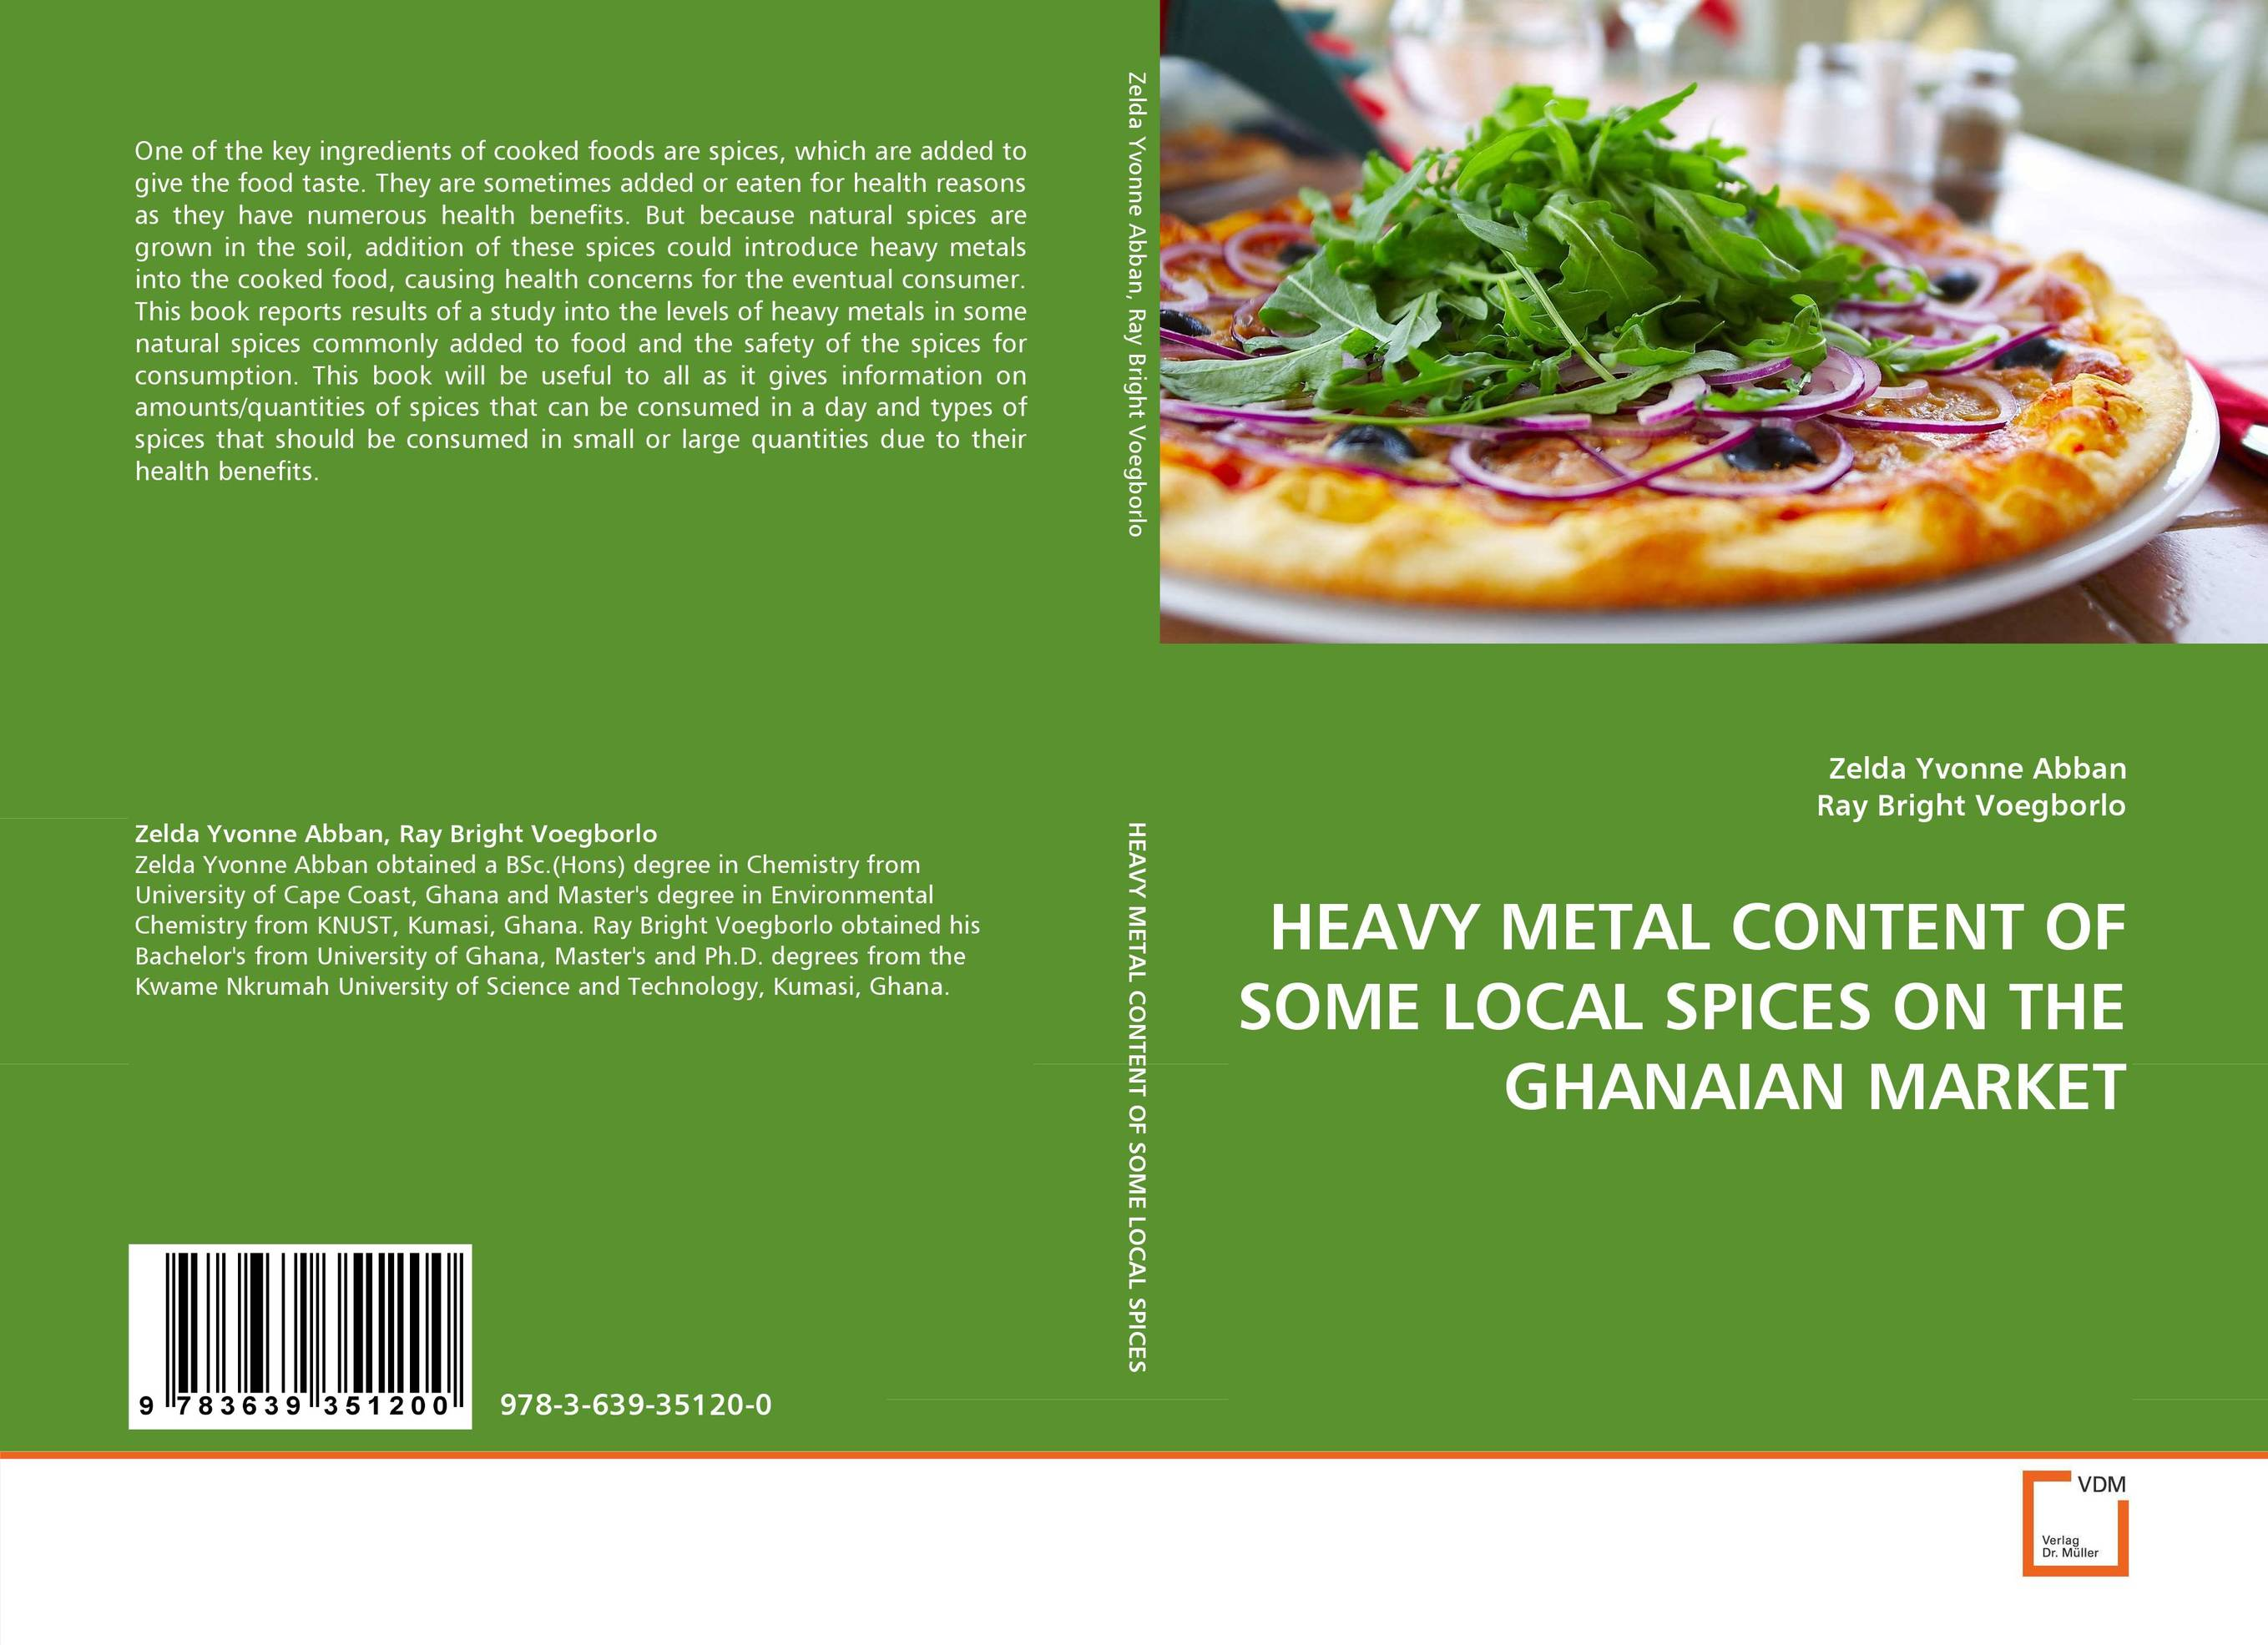 HEAVY METAL CONTENT OF SOME LOCAL SPICES ON THE GHANAIAN MARKET wound healing properties of some indigenous ghanaian plants